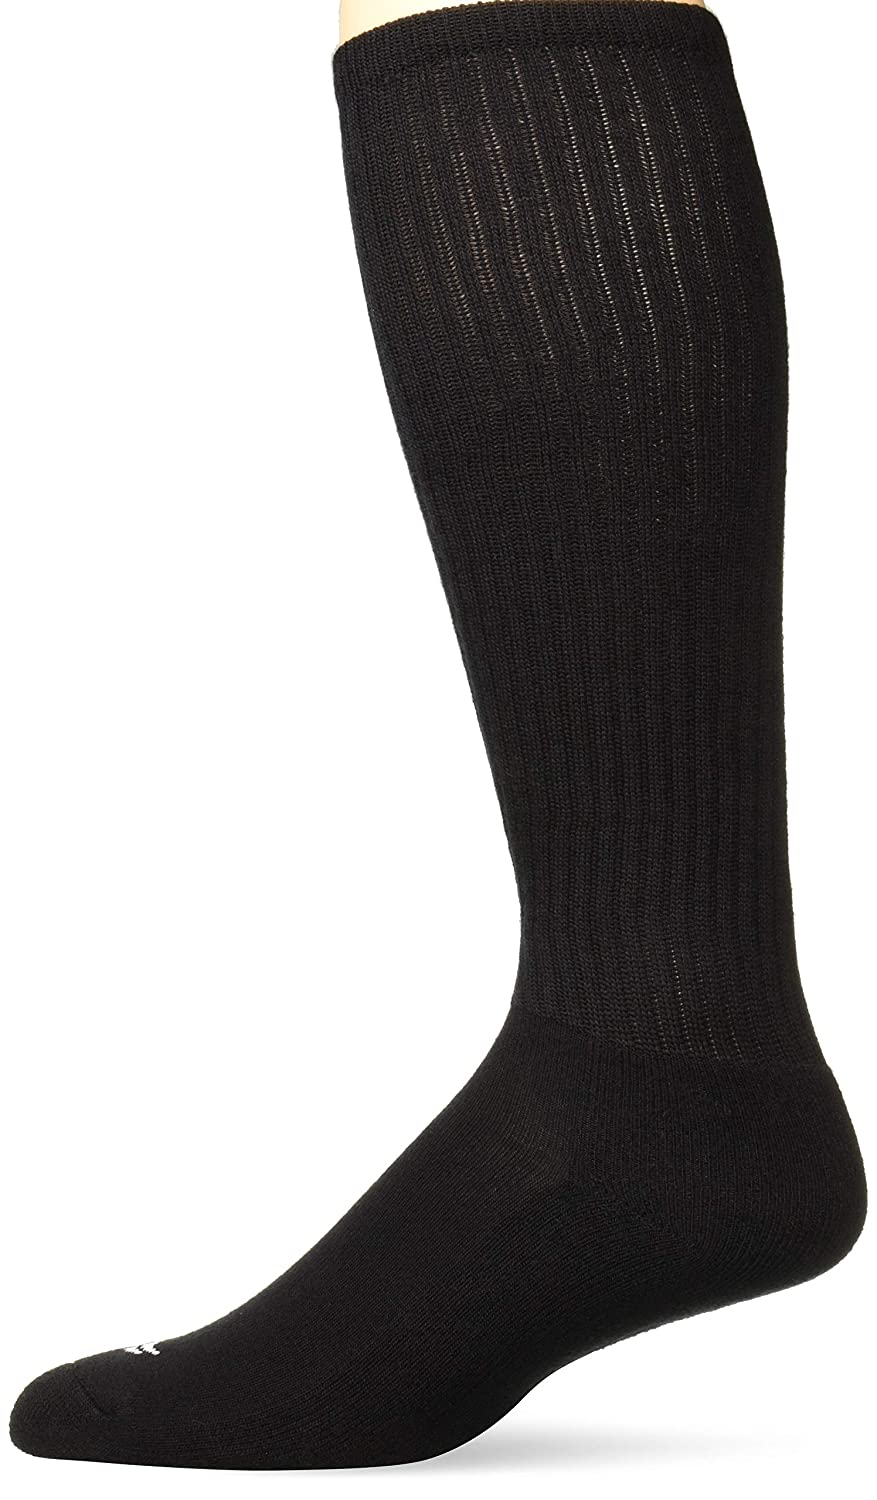 Sof Sole Soccer Over the Calf Team Athletic Performance Socks